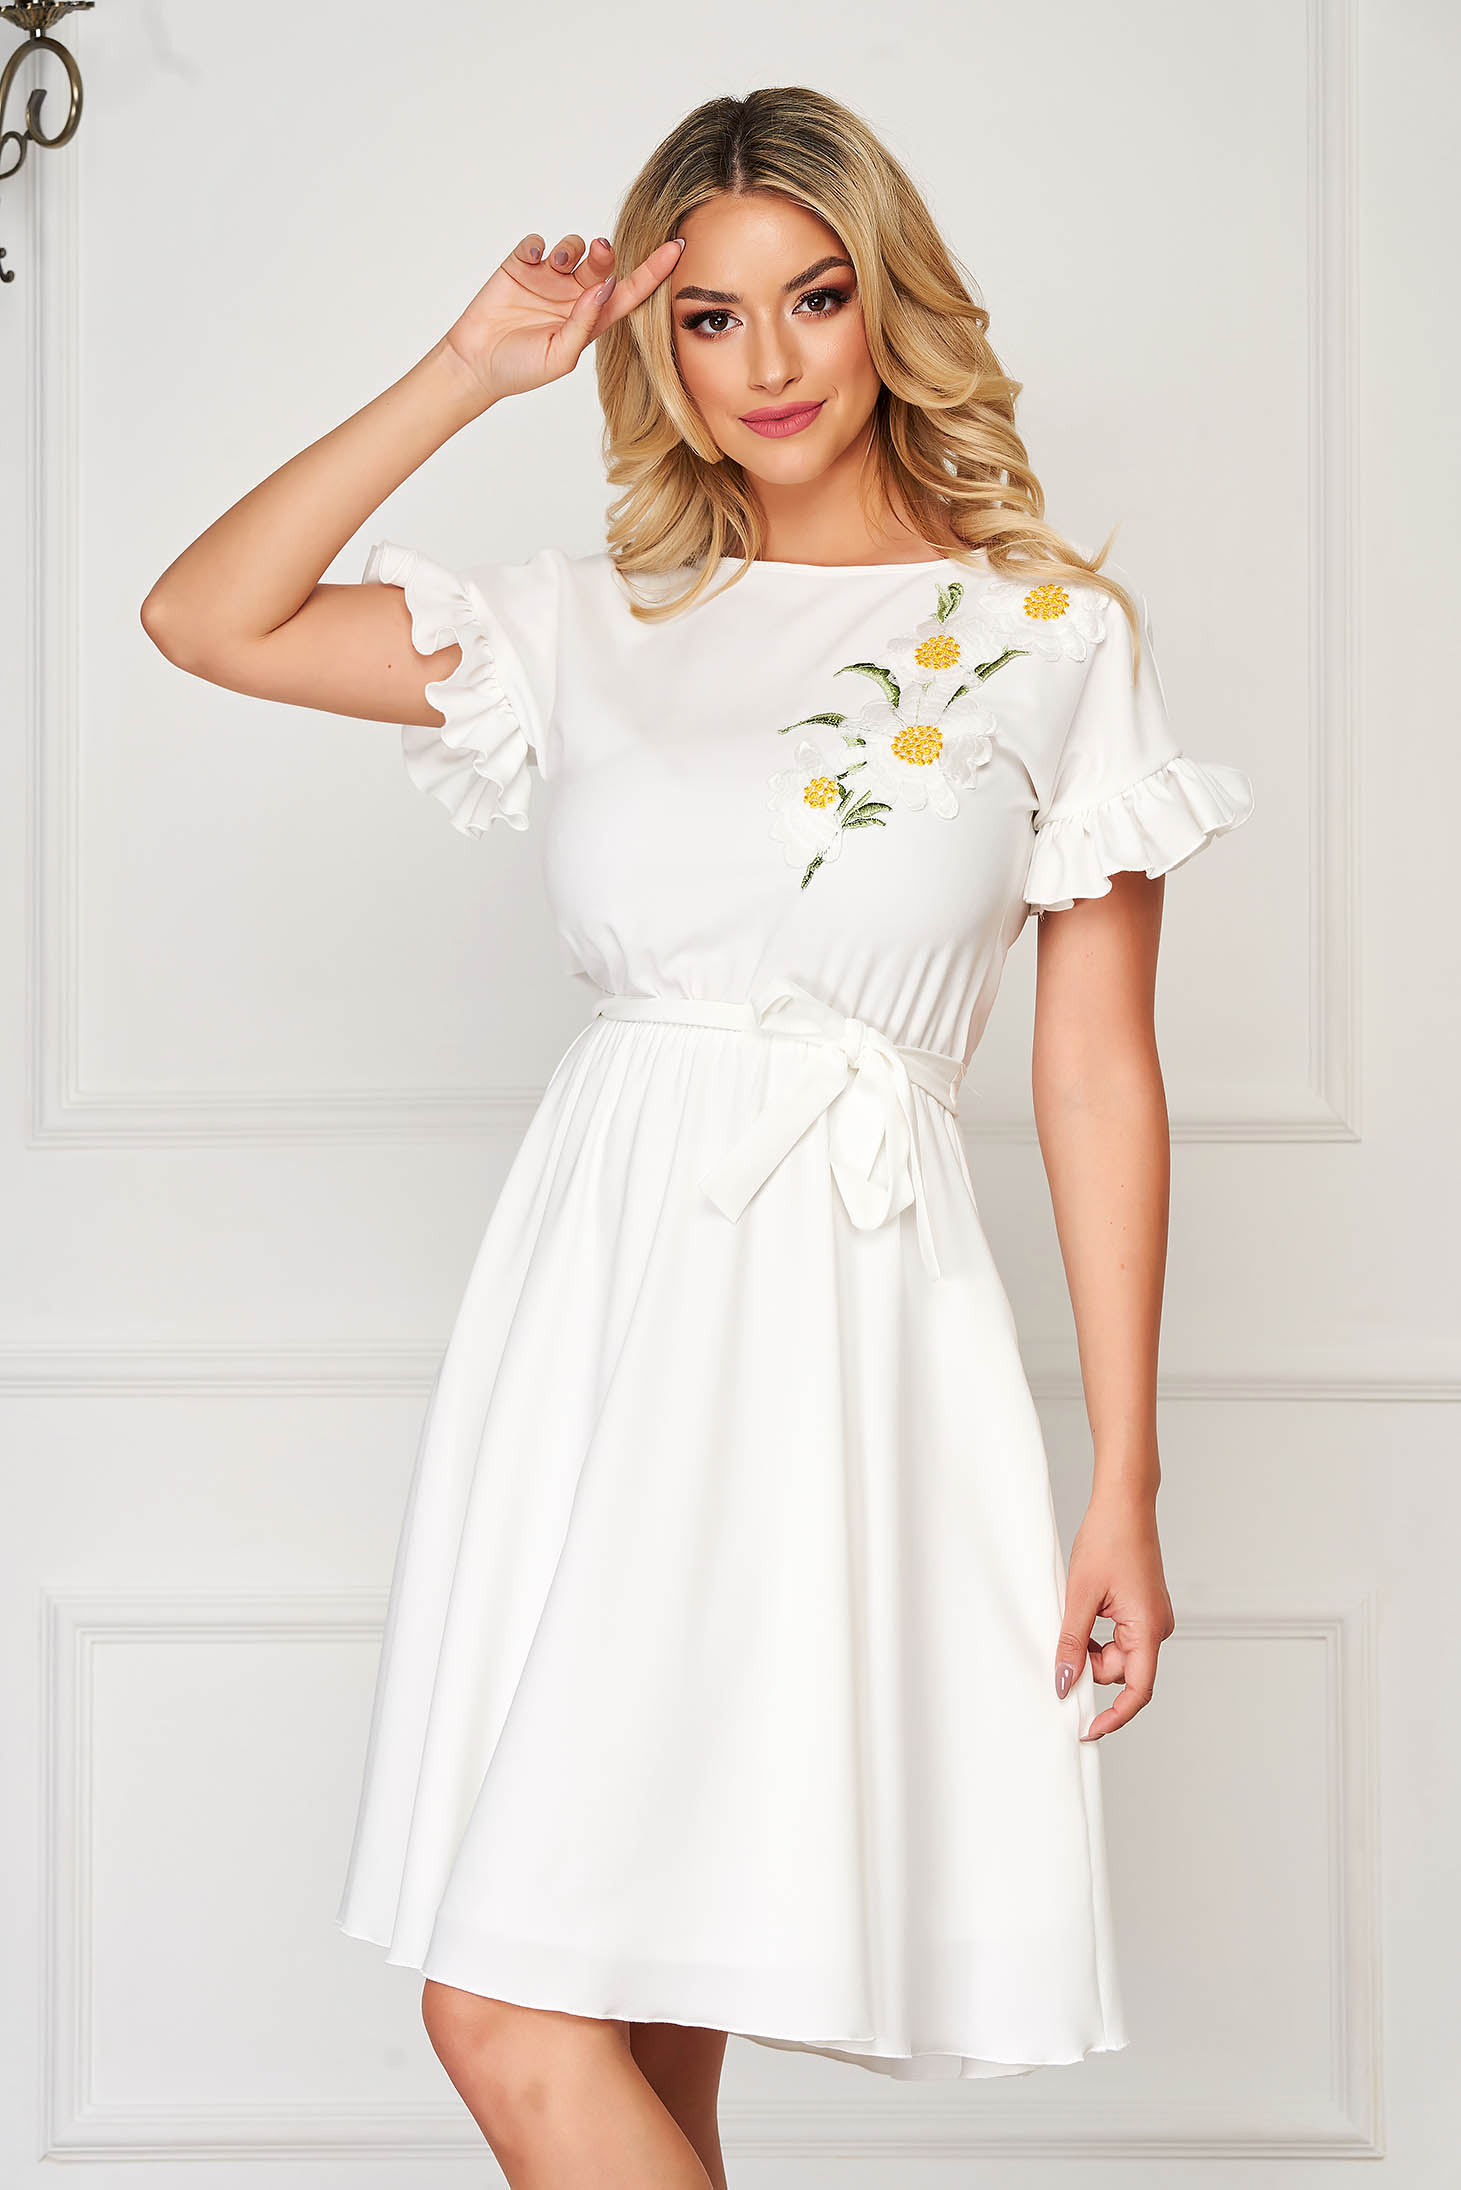 Dress StarShinerS white elegant midi from elastic fabric with ruffled sleeves with floral details